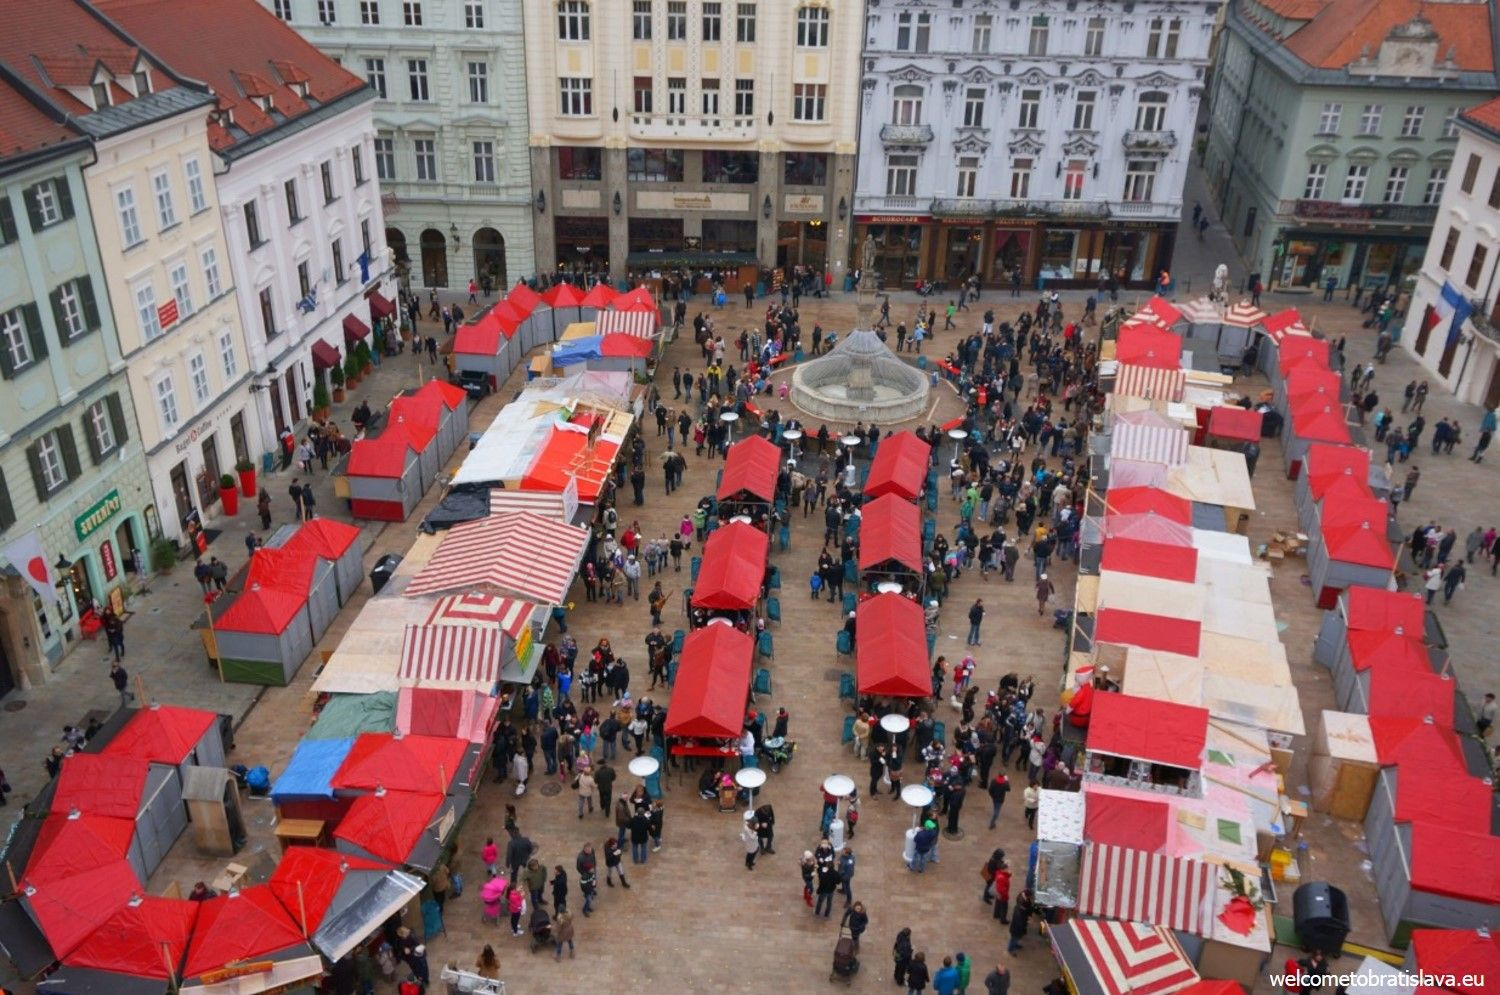 Christmas markets at our Main square